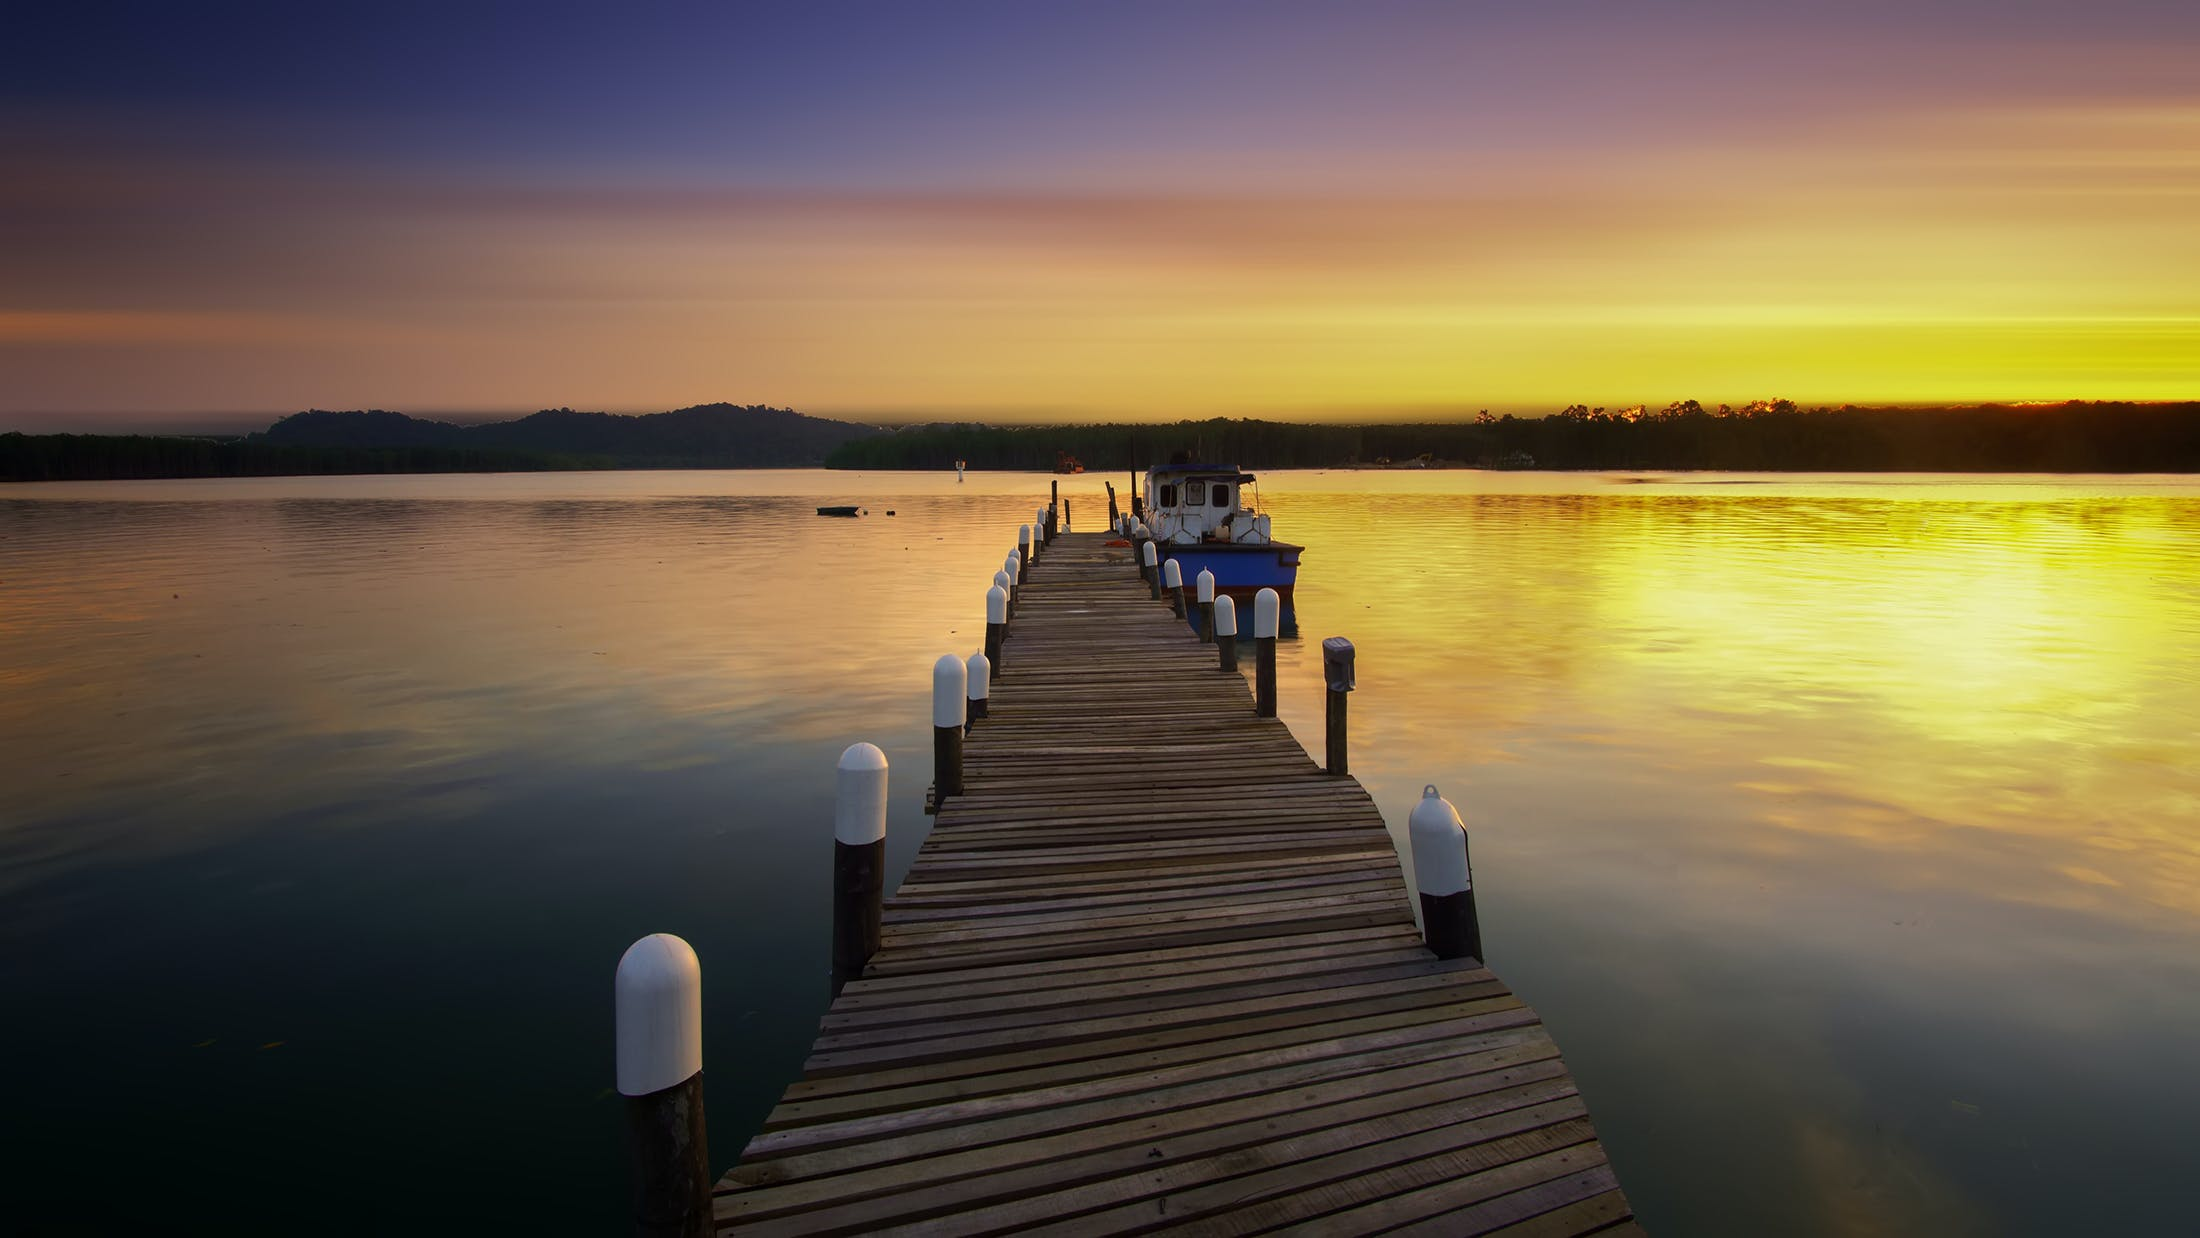 Free stock photo of jetty, dawn, sky, sunset